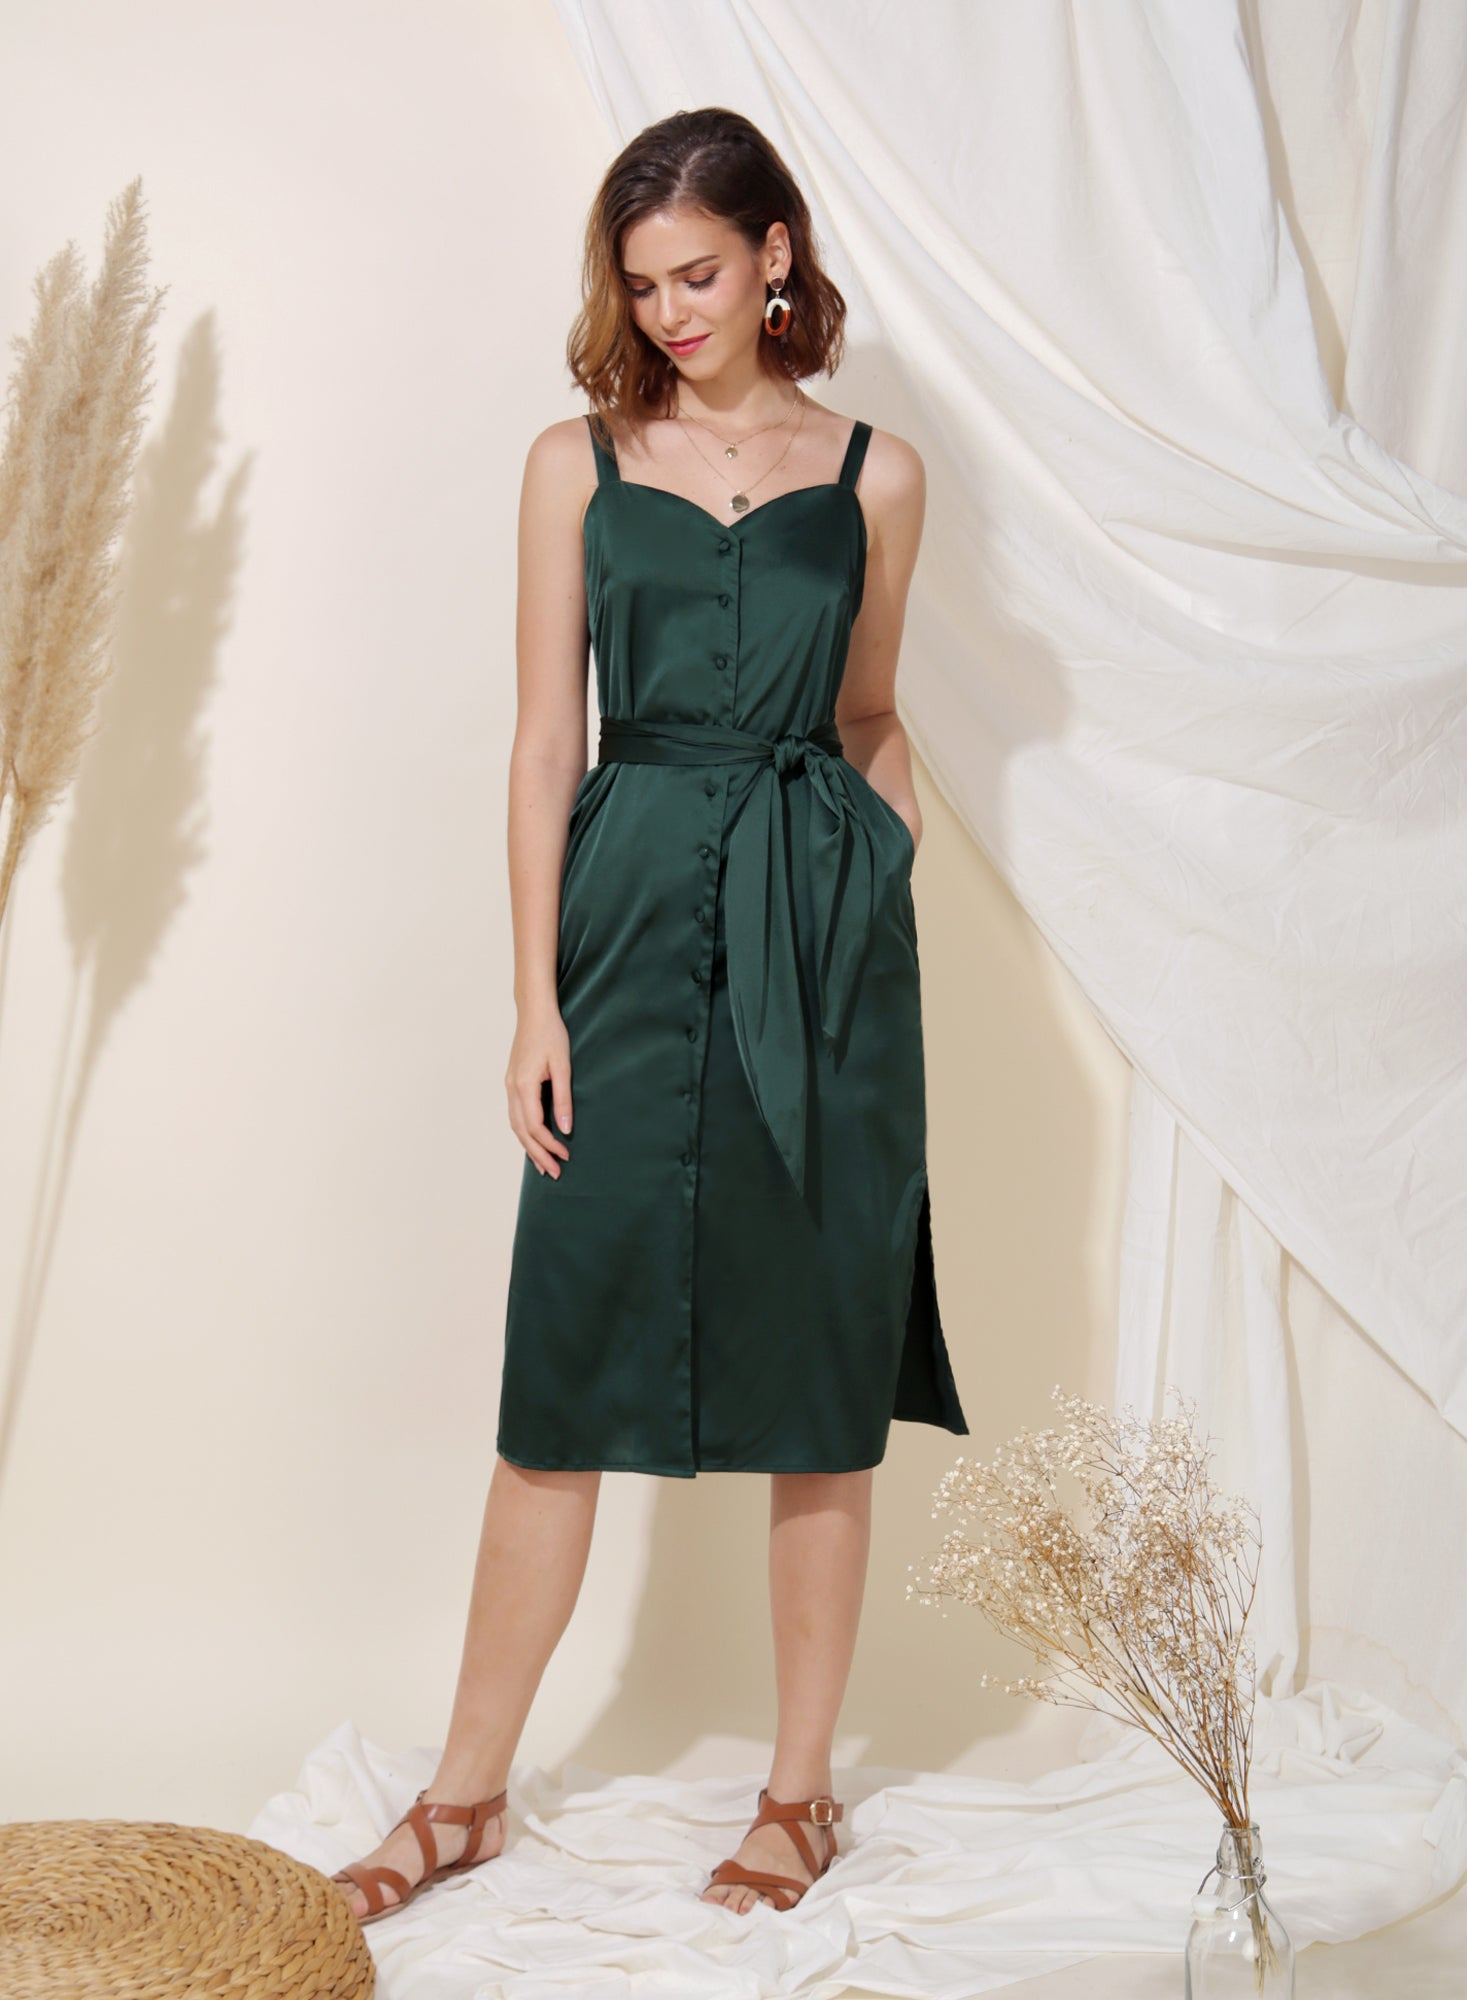 Flicker Button Down Silk Dress (Forest) at $ 41.50 only sold at And Well Dressed Online Fashion Store Singapore